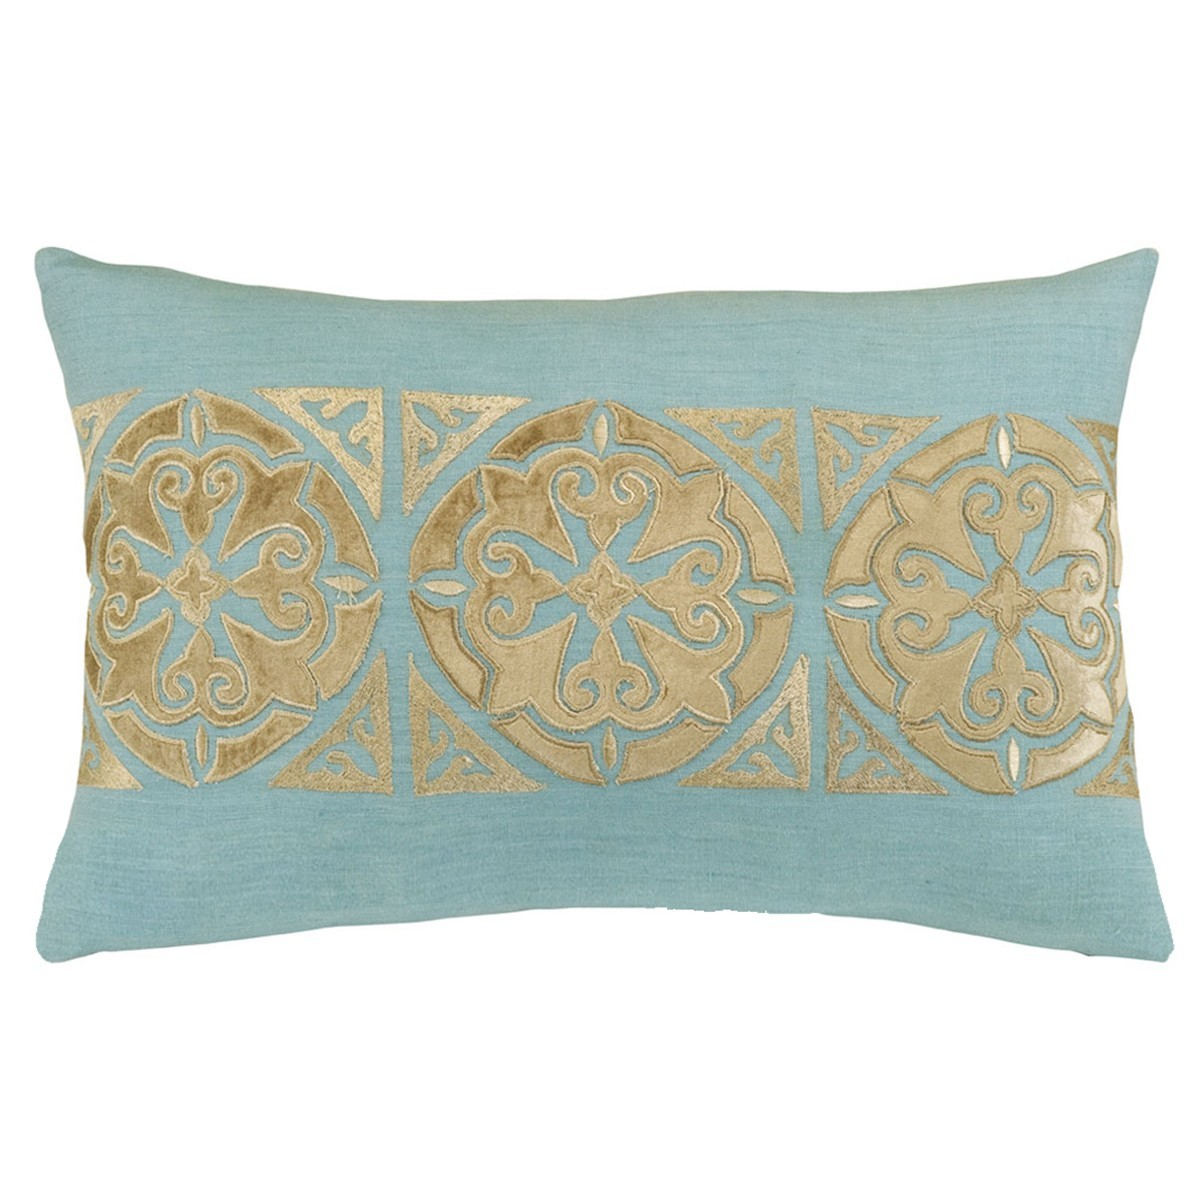 Discontinued Lili Alessandra Accents with Pearls Decorative Pillows